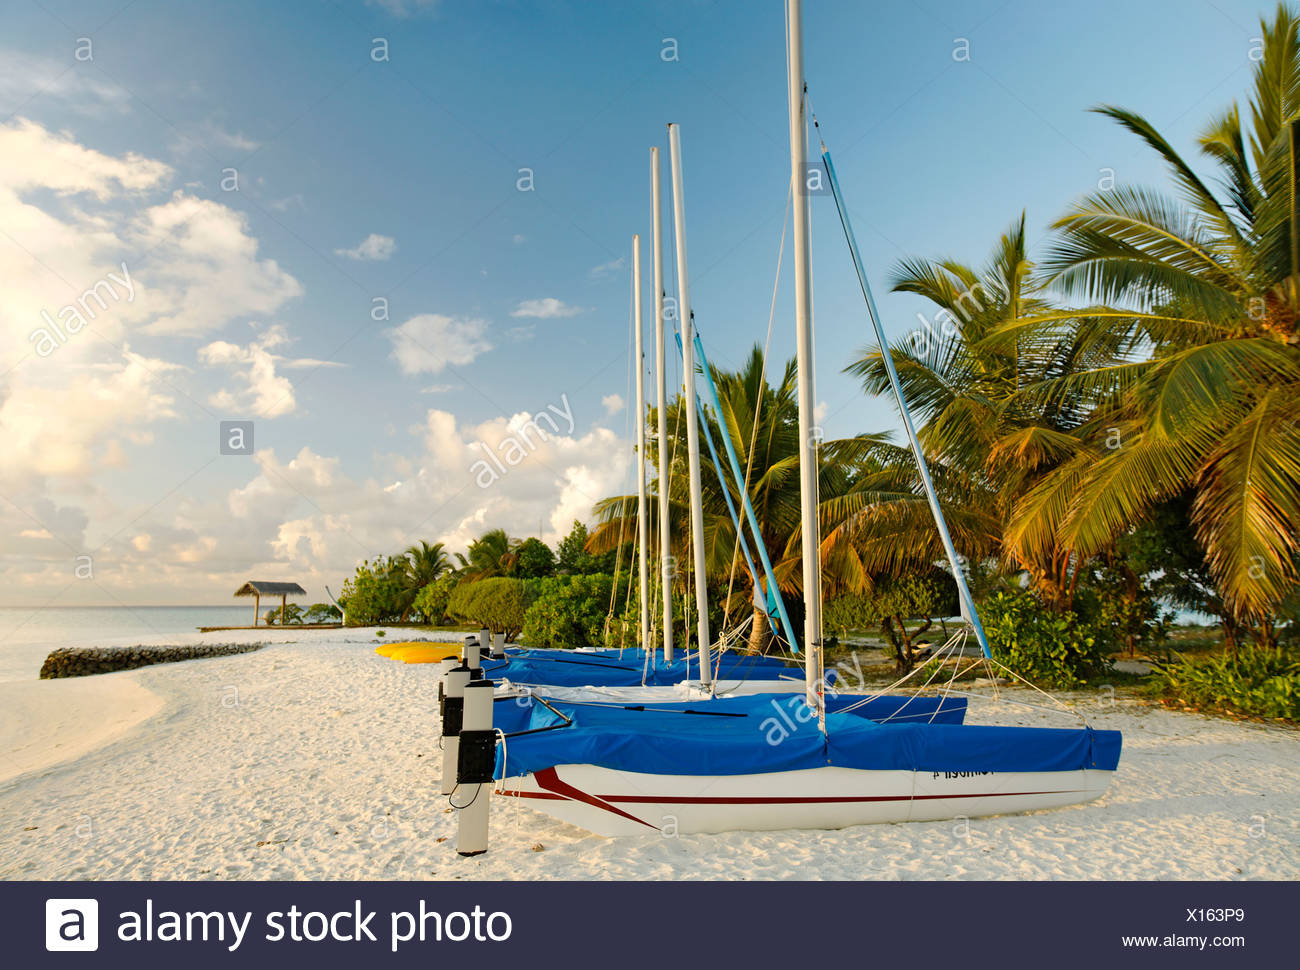 Hobby Car, catamarans, sail boats, side by side, on the beach, palm trees, Maldive island, South Male Atoll, Maldives, Achipela - Stock Image